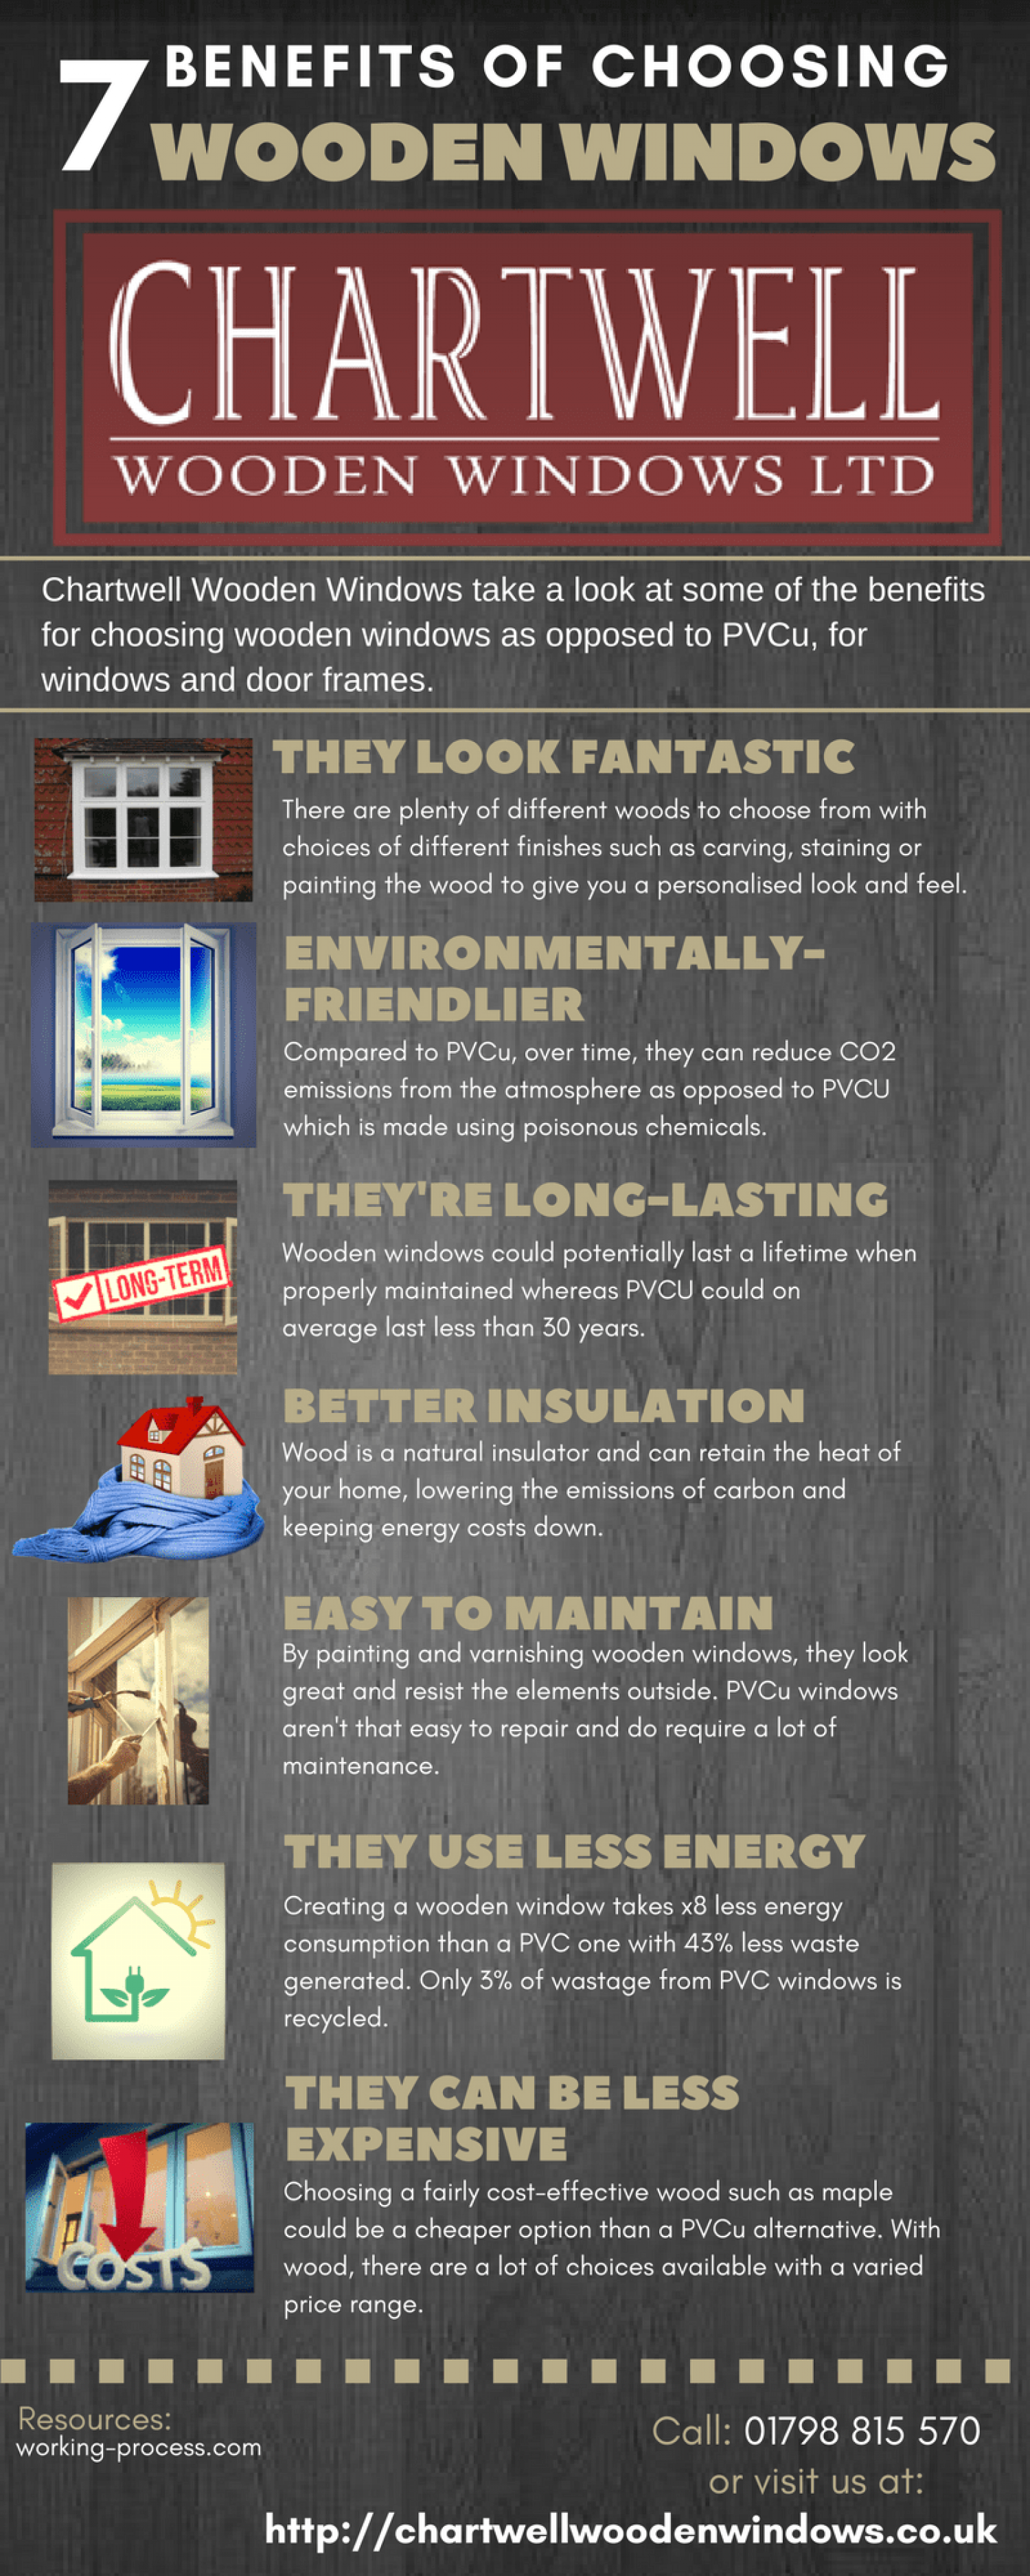 Benefits of wooden windows chartwell wooden windows infographic